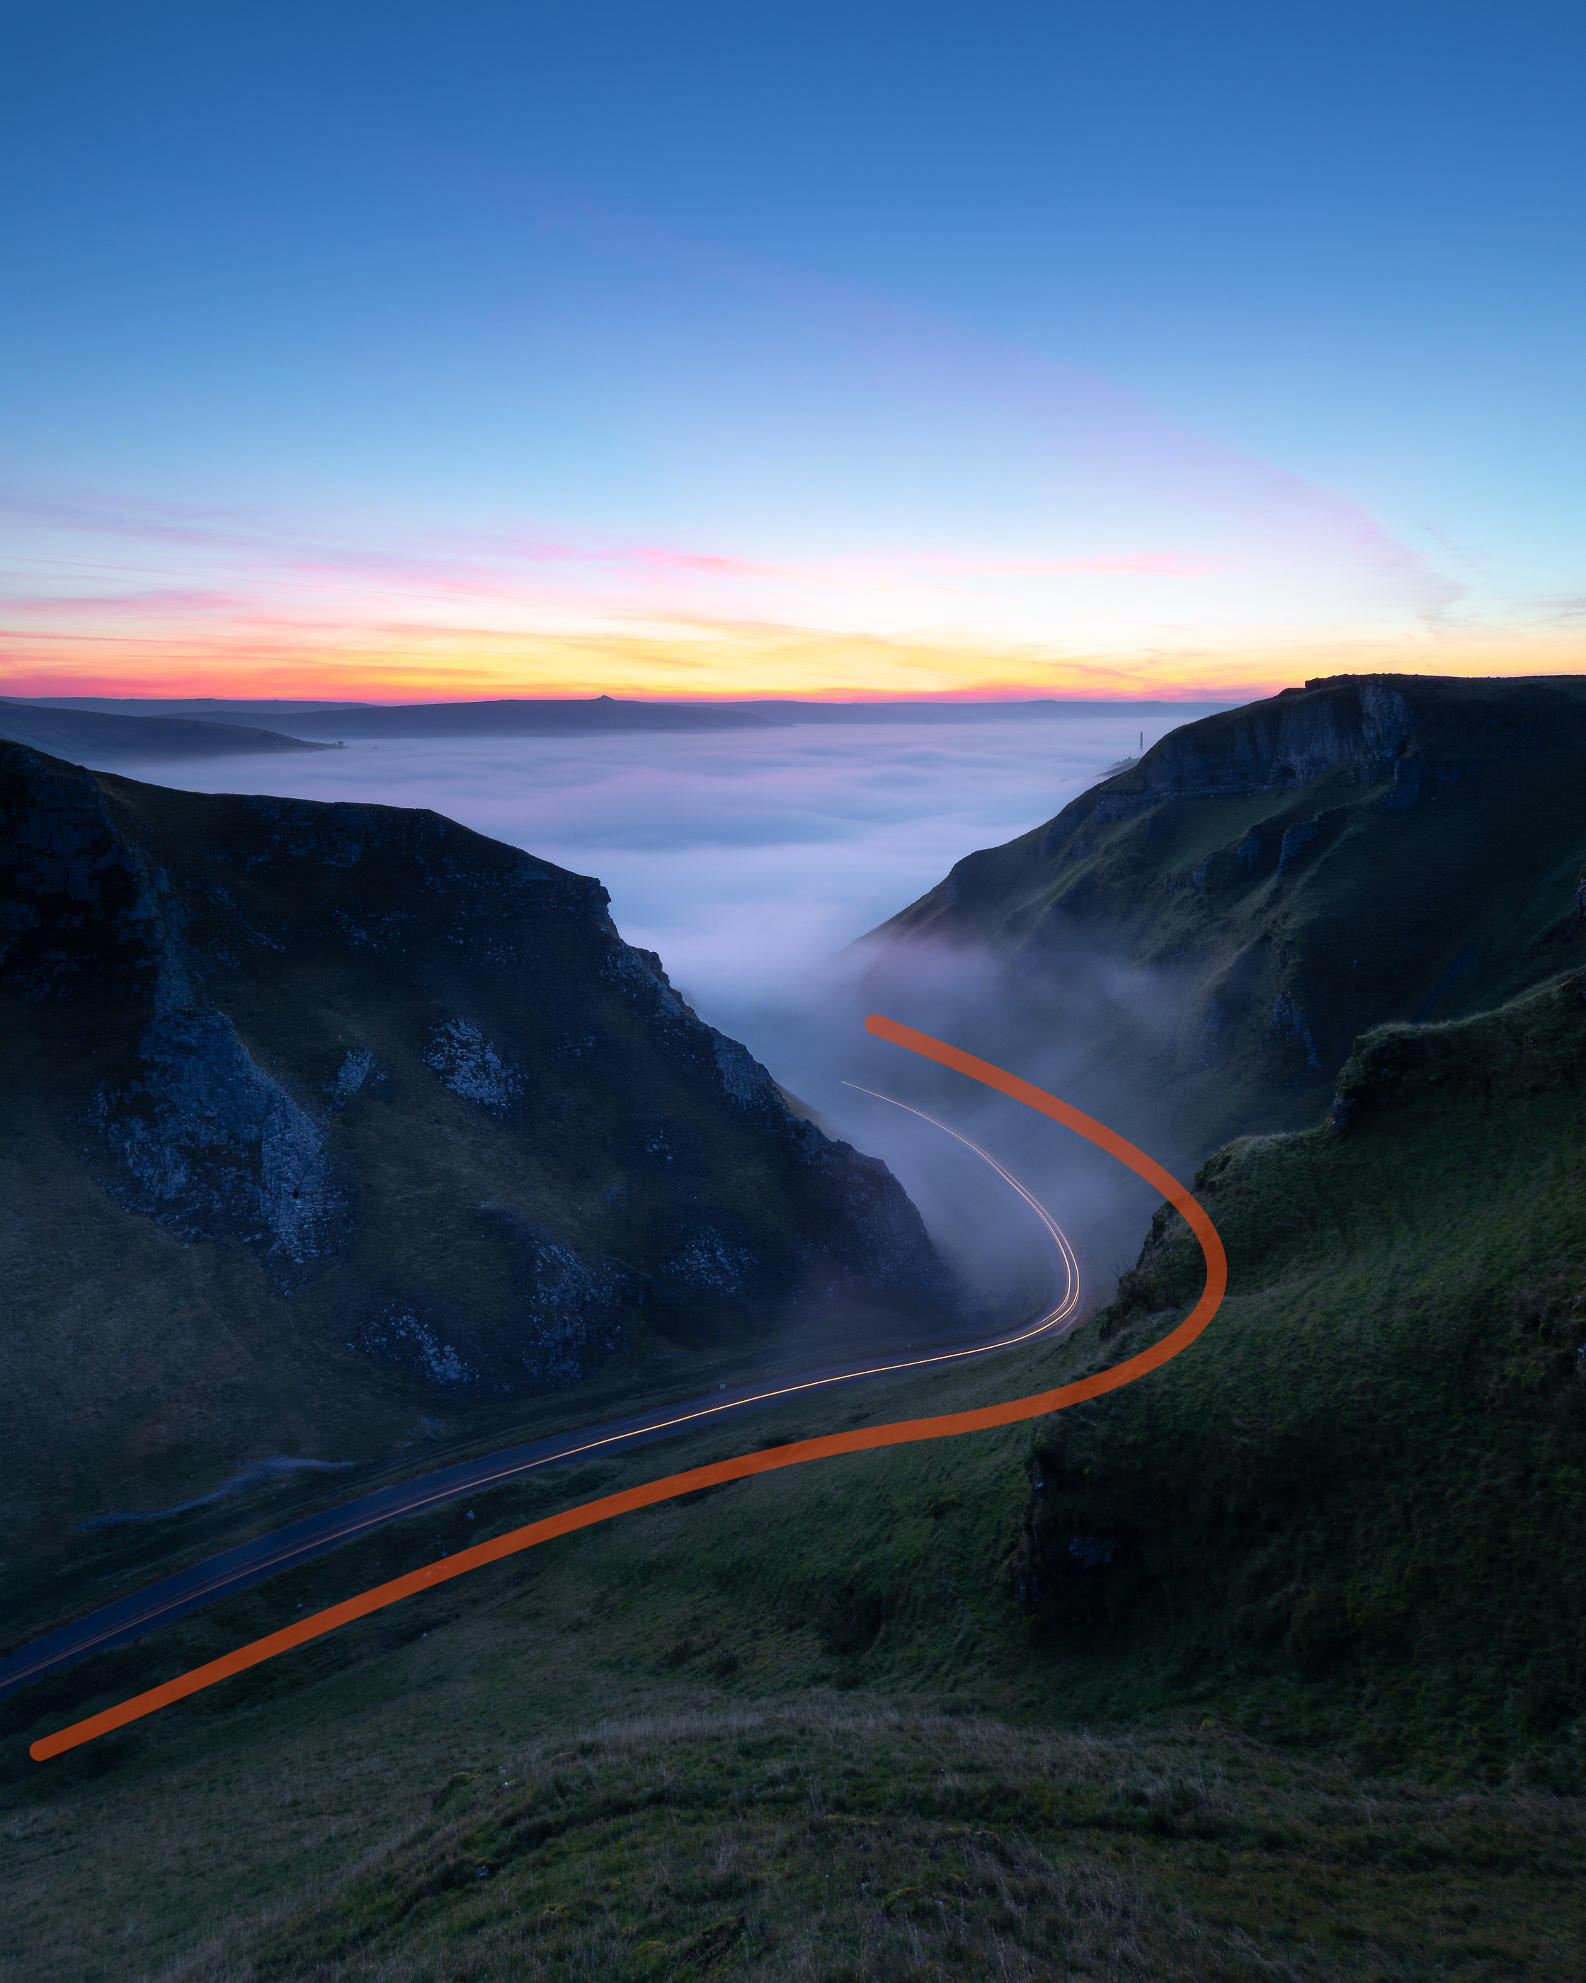 A colourful sunrise at Winnats Pass with a cloud inversion developing early on. A long exposure helped to capture the light trails of an emerging car, with an added leading line to show the compositional technique